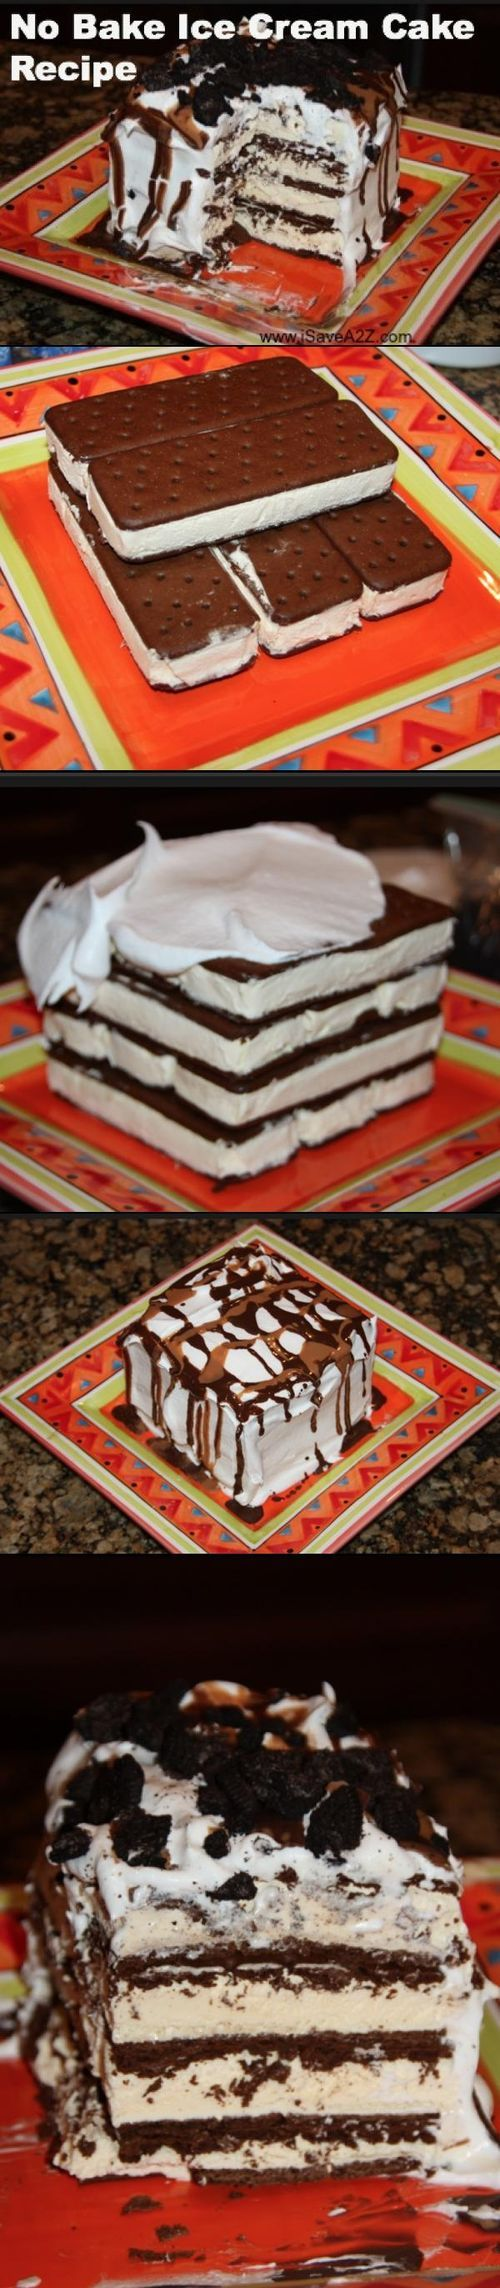 DIY No Bake Ice Cream Cake